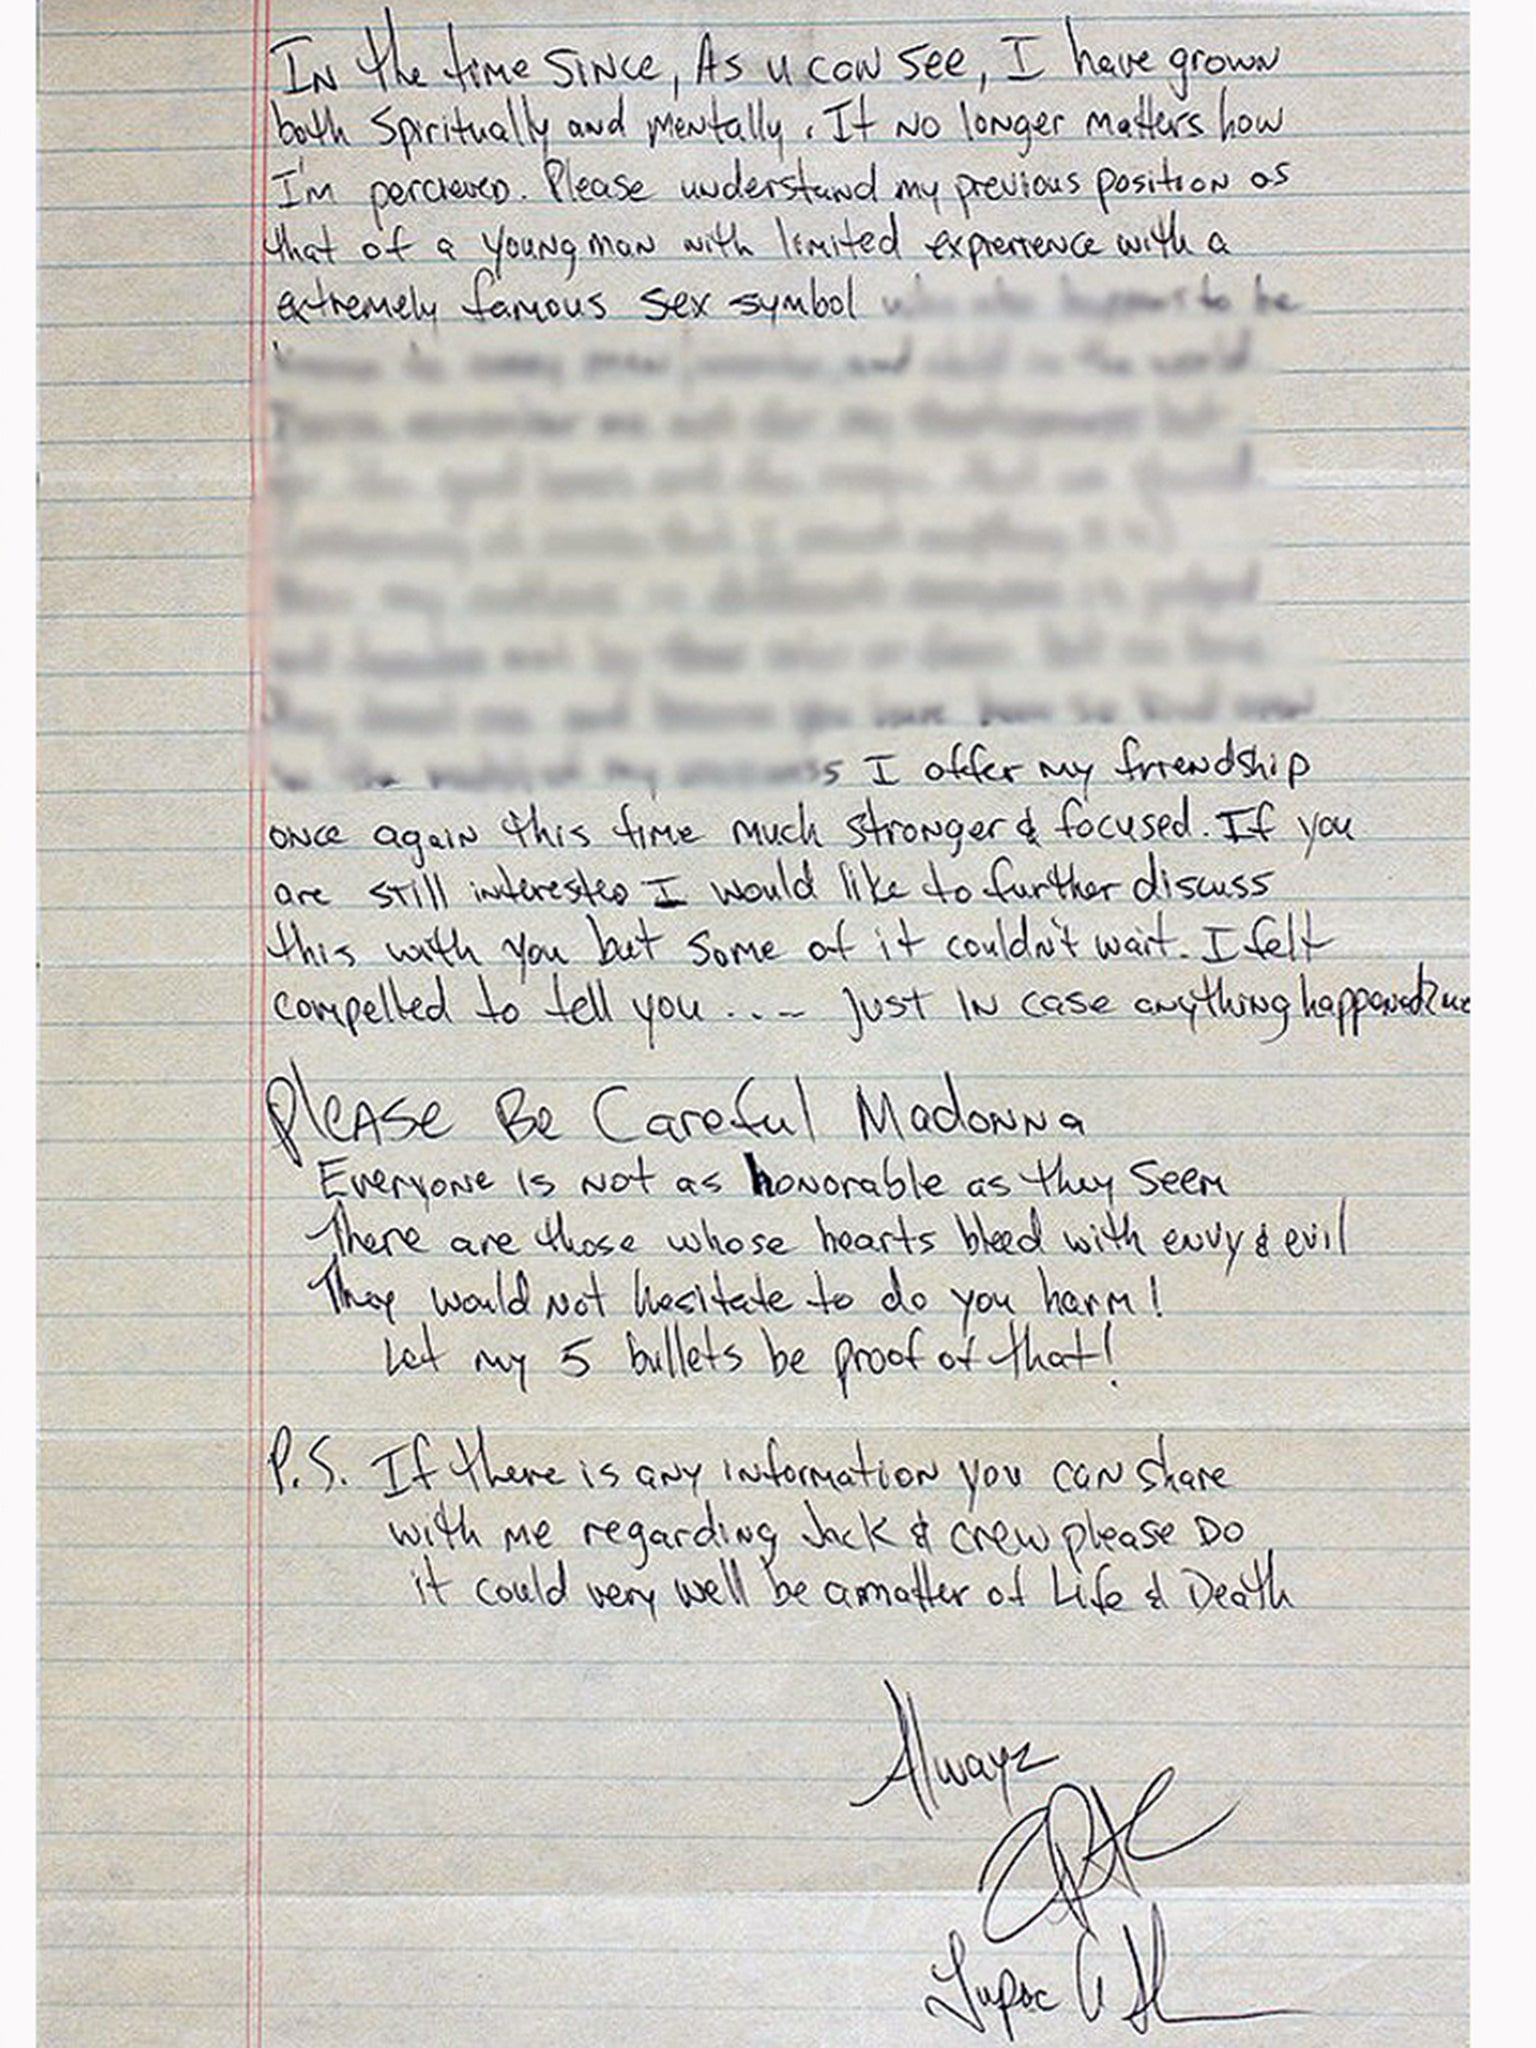 Tupacs Break Up Letter To Madonna In Full The Independent